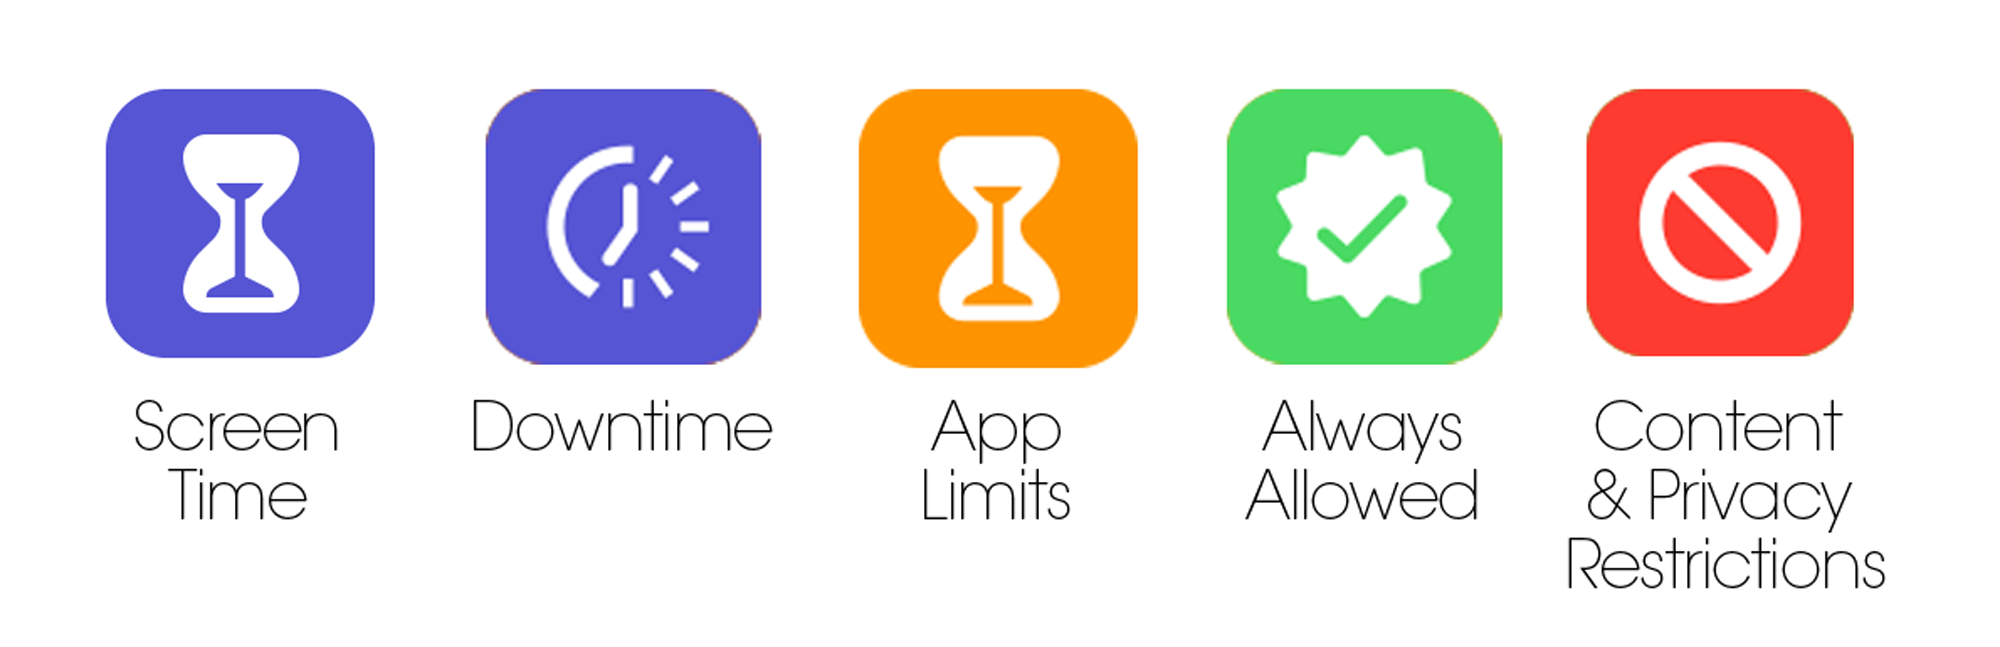 AppleScreenTimeIcons.png